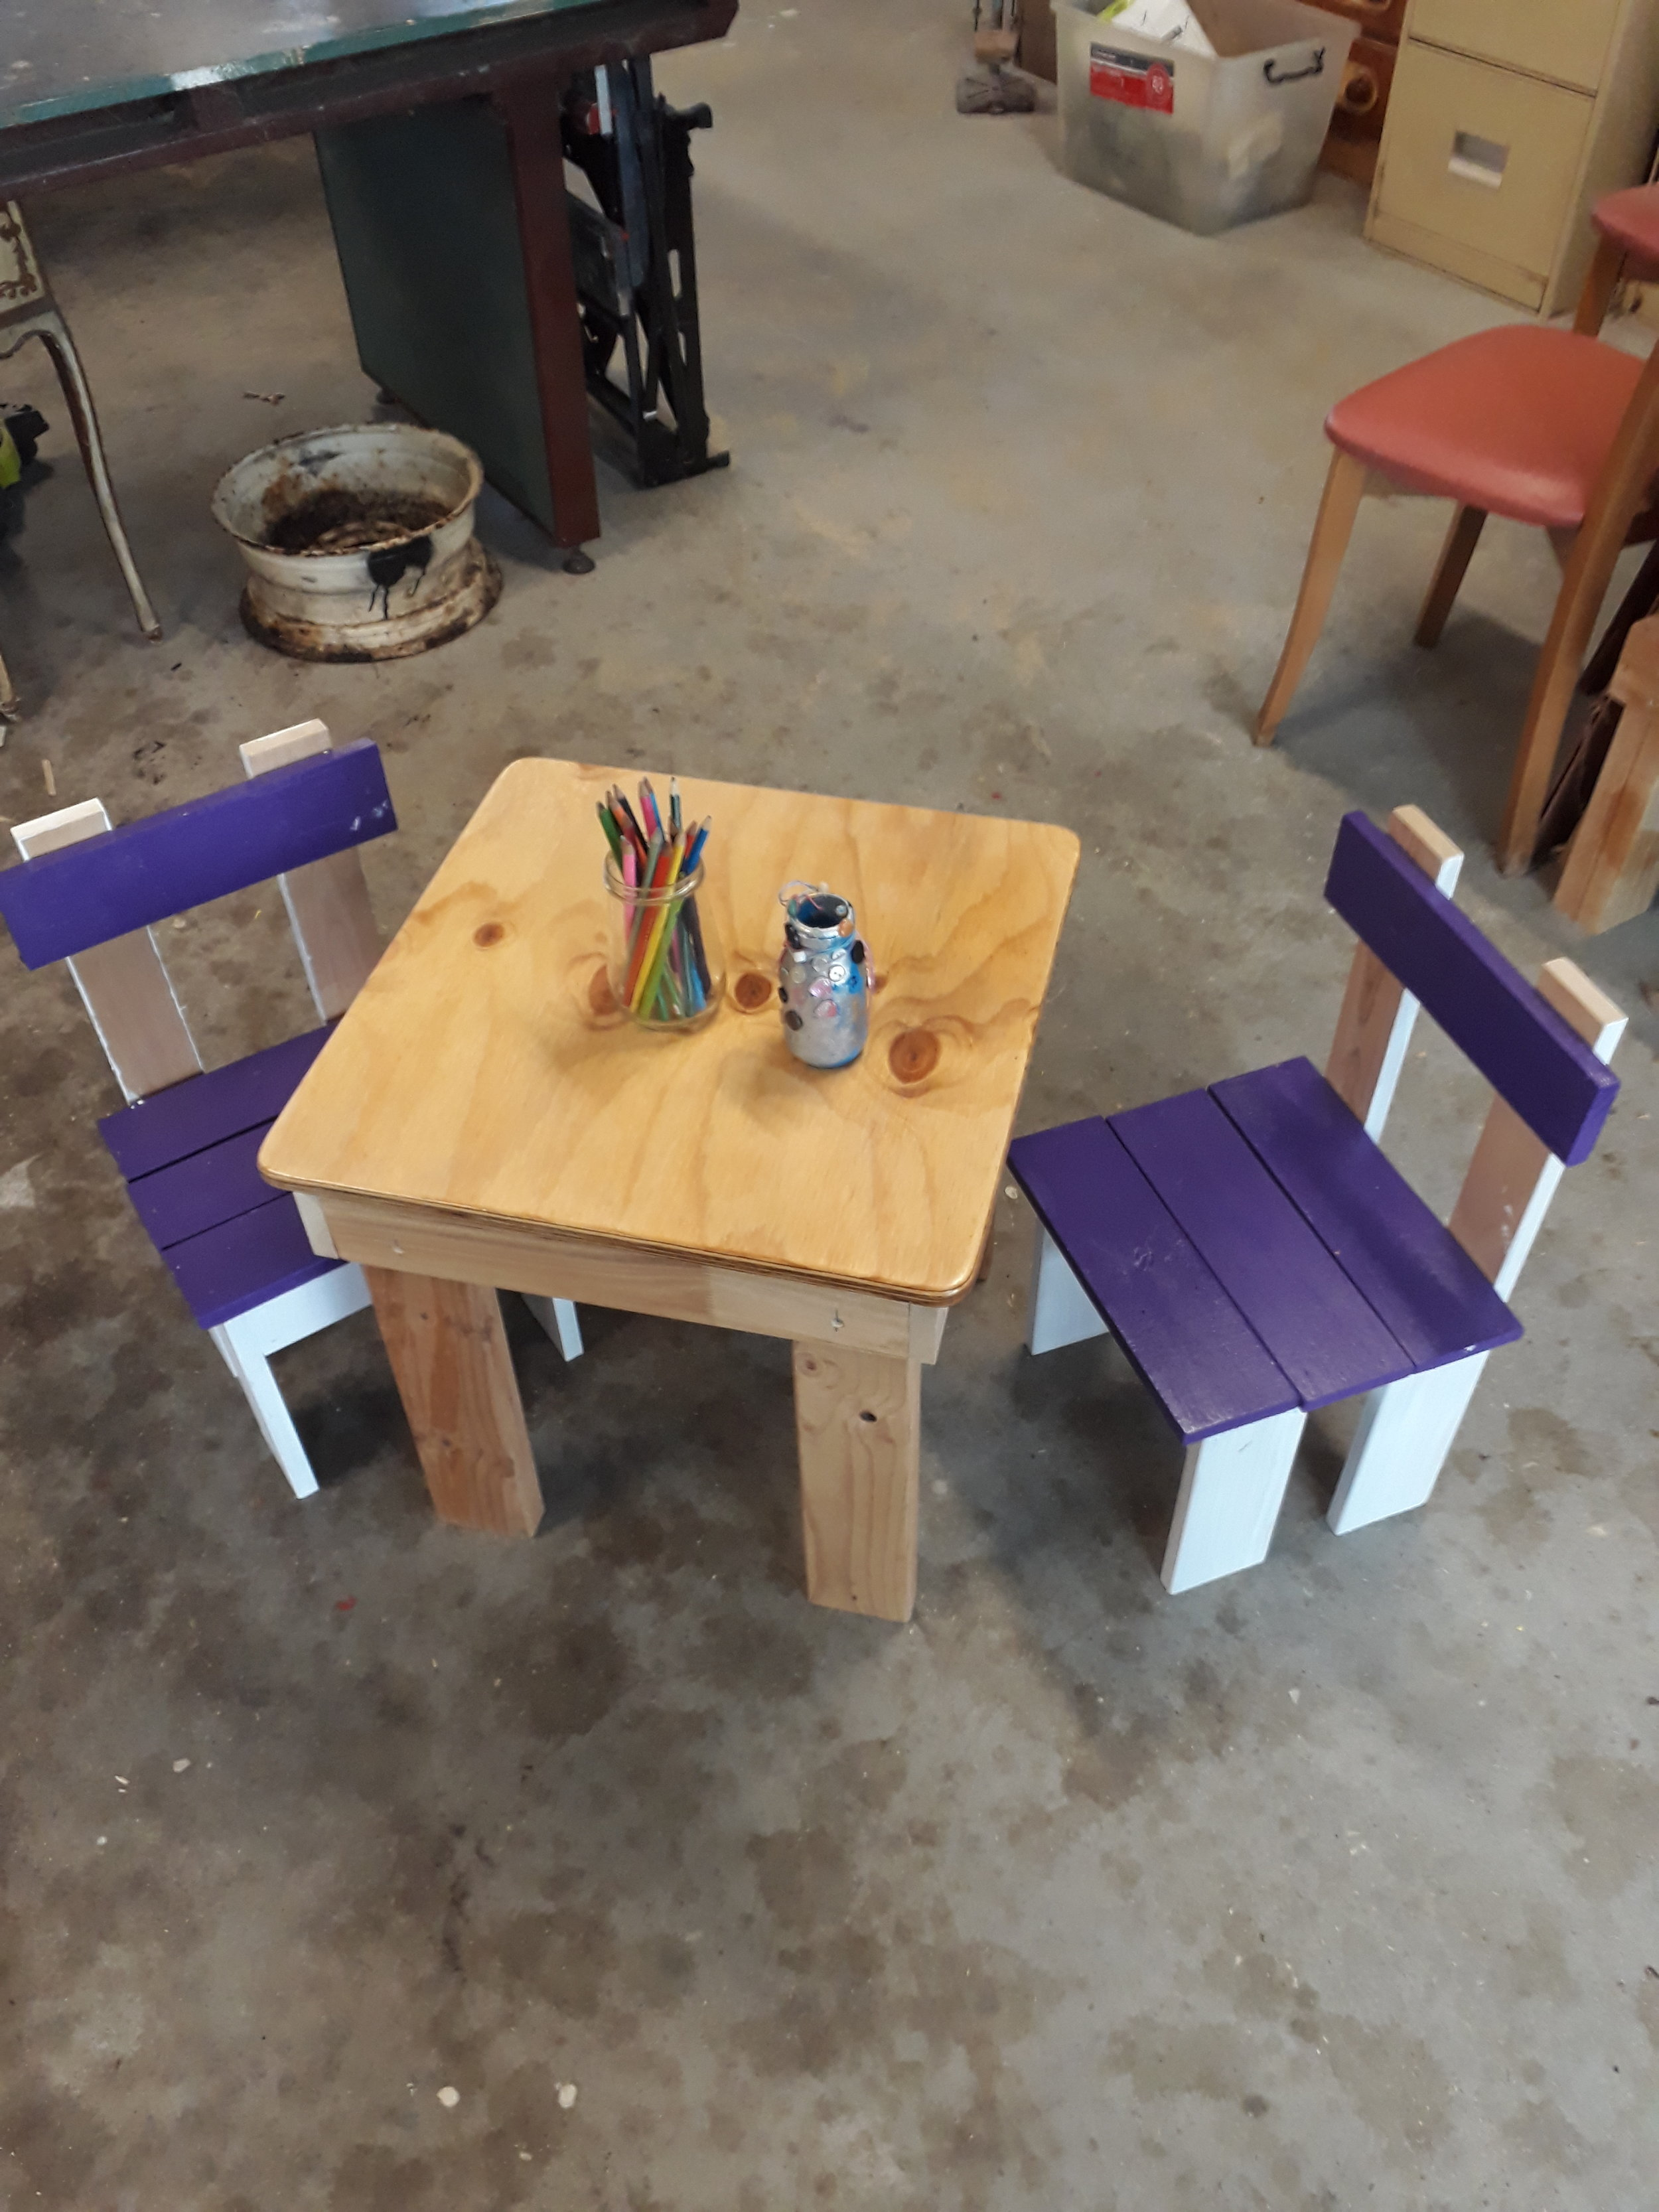 The participants of the QITE Work for the Dole program have built some beautiful children's table and chair sets out of recycled pallets. They can be purchased for $75 for 1 table and 2 chairs. Orders for Christmas are now being taken. Please contact the Mossman Community Centre on 4098 2005. Proceeds go to our Community Development programs.